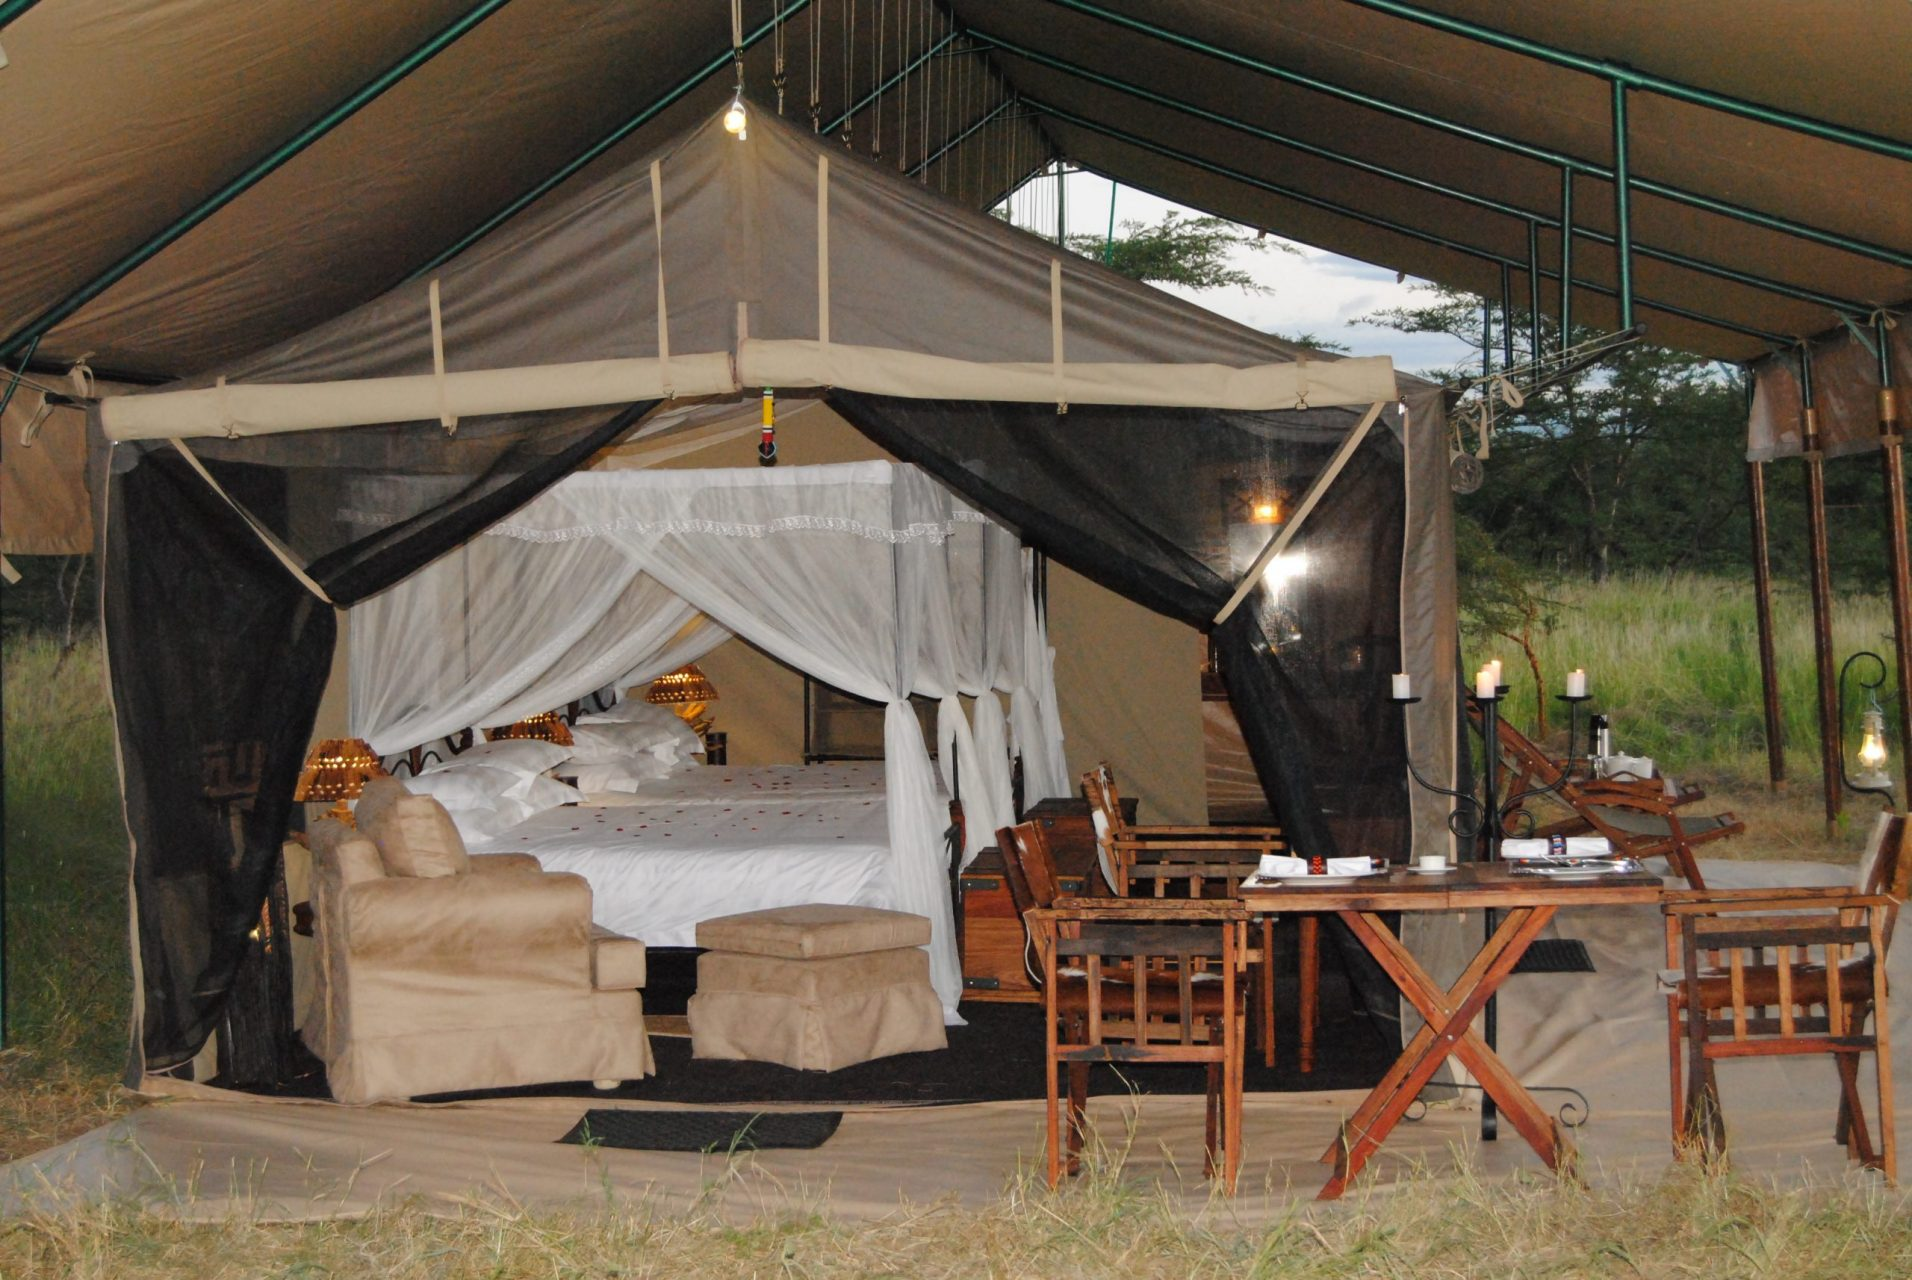 11 DAY TENTED CAMPS SAFARI AND ZANZIBAR BEACH